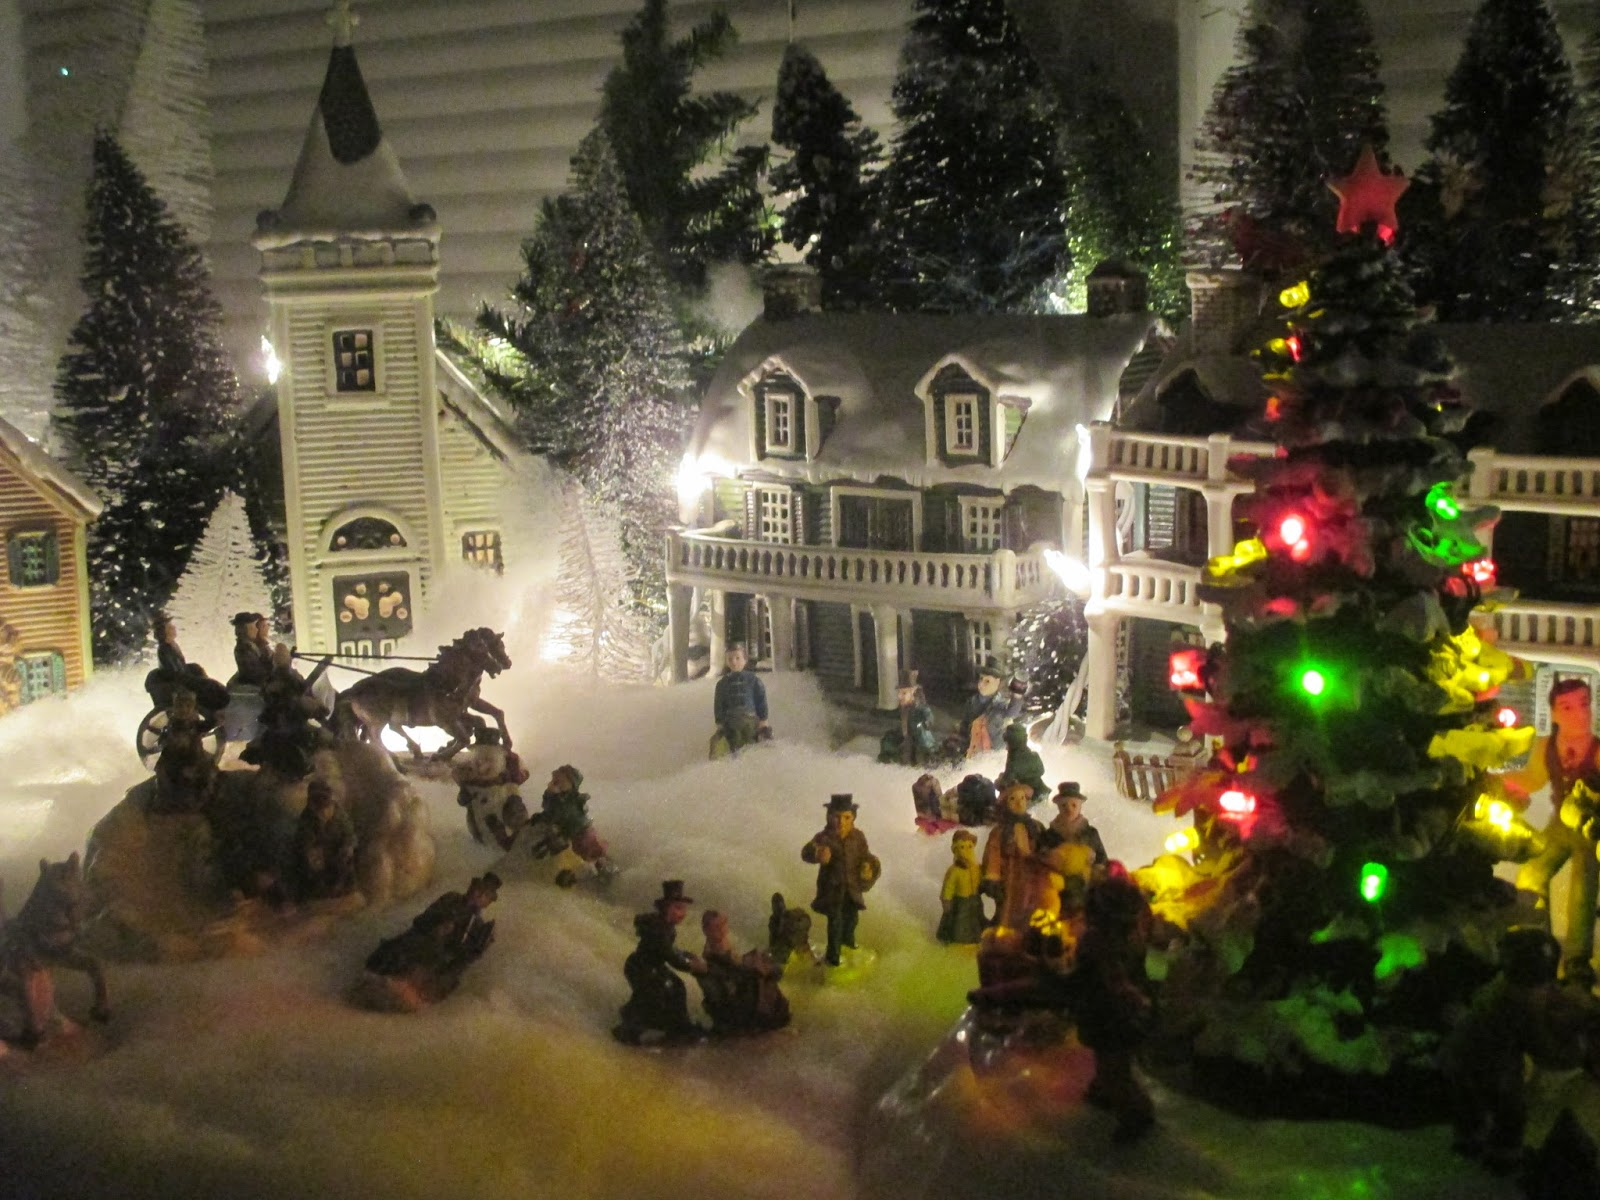 From Cedar Pond To Laughing Dove Farm : Christmas Village